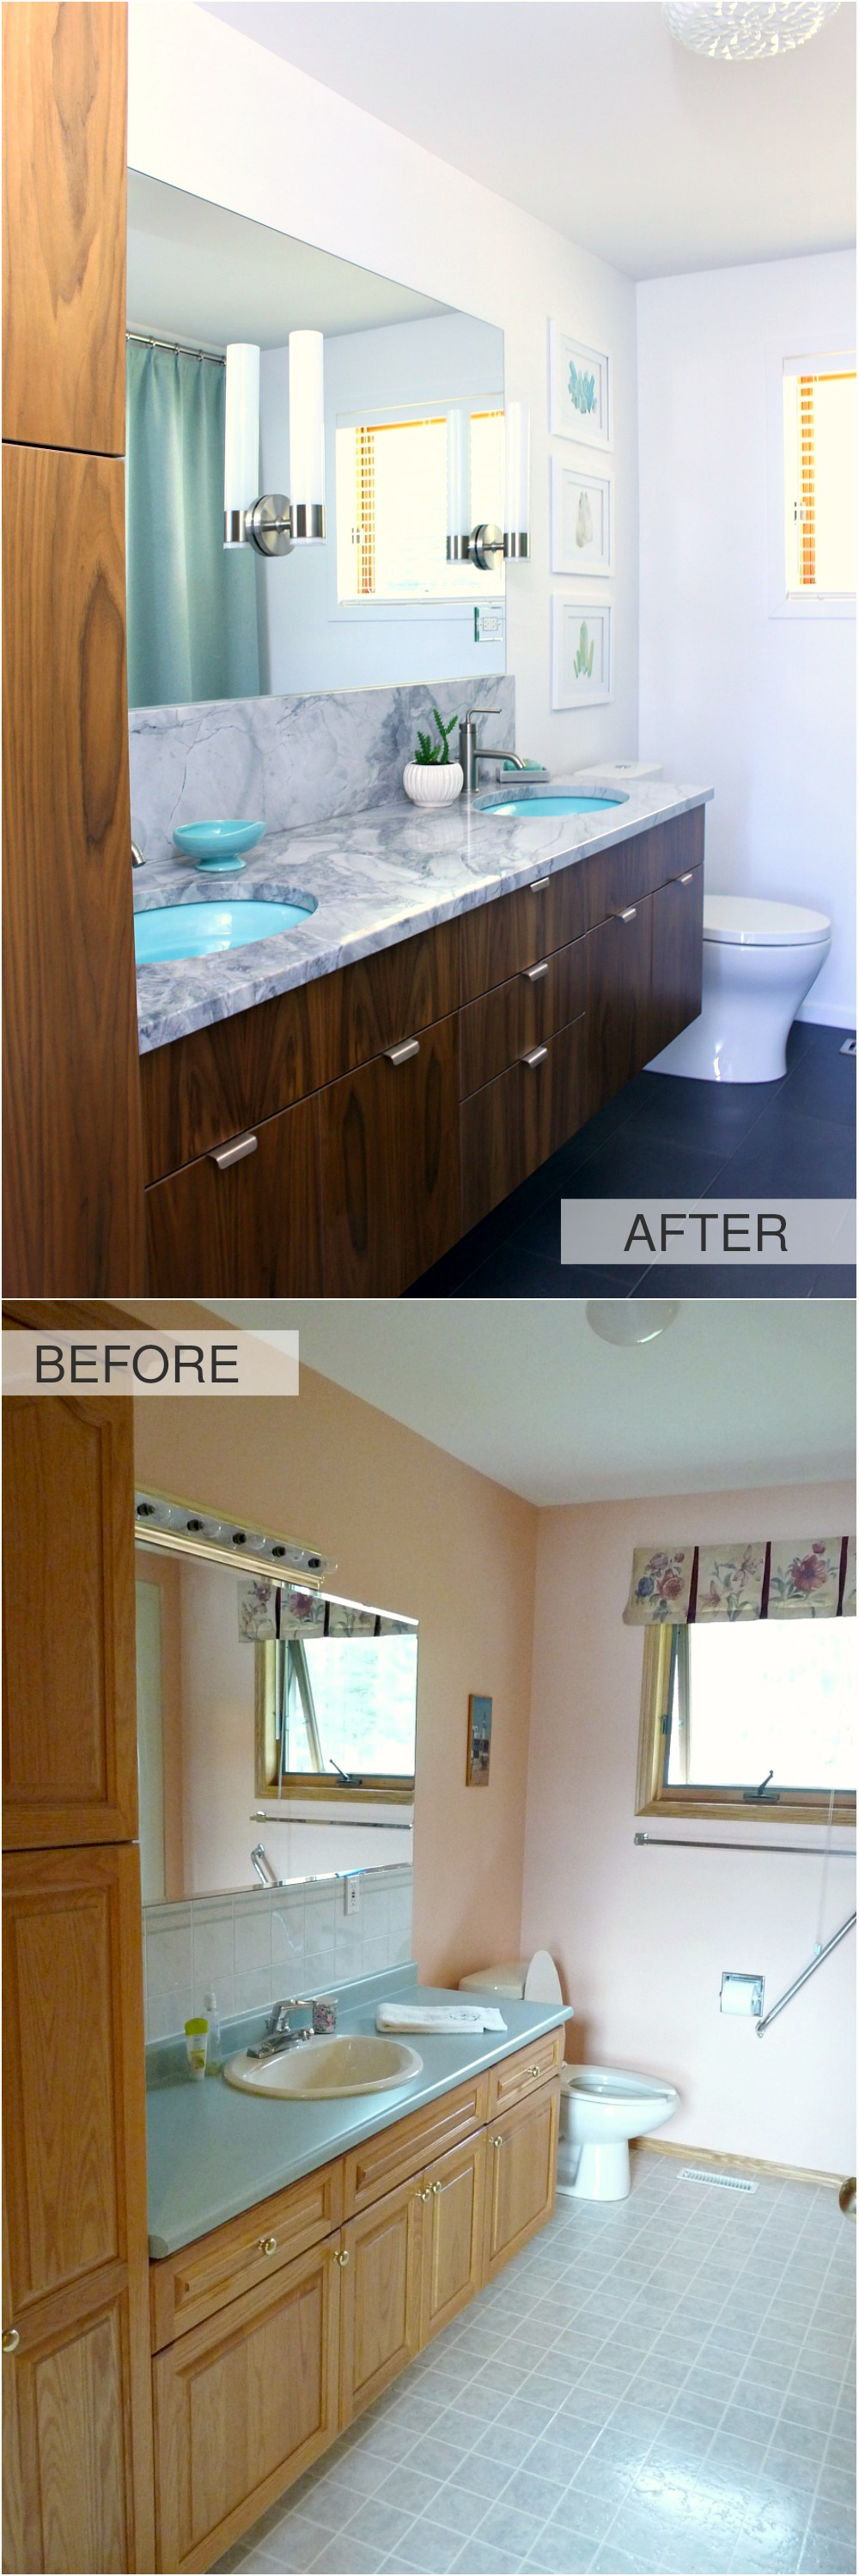 Mid-Century Modern Inspired Bathroom Before and After